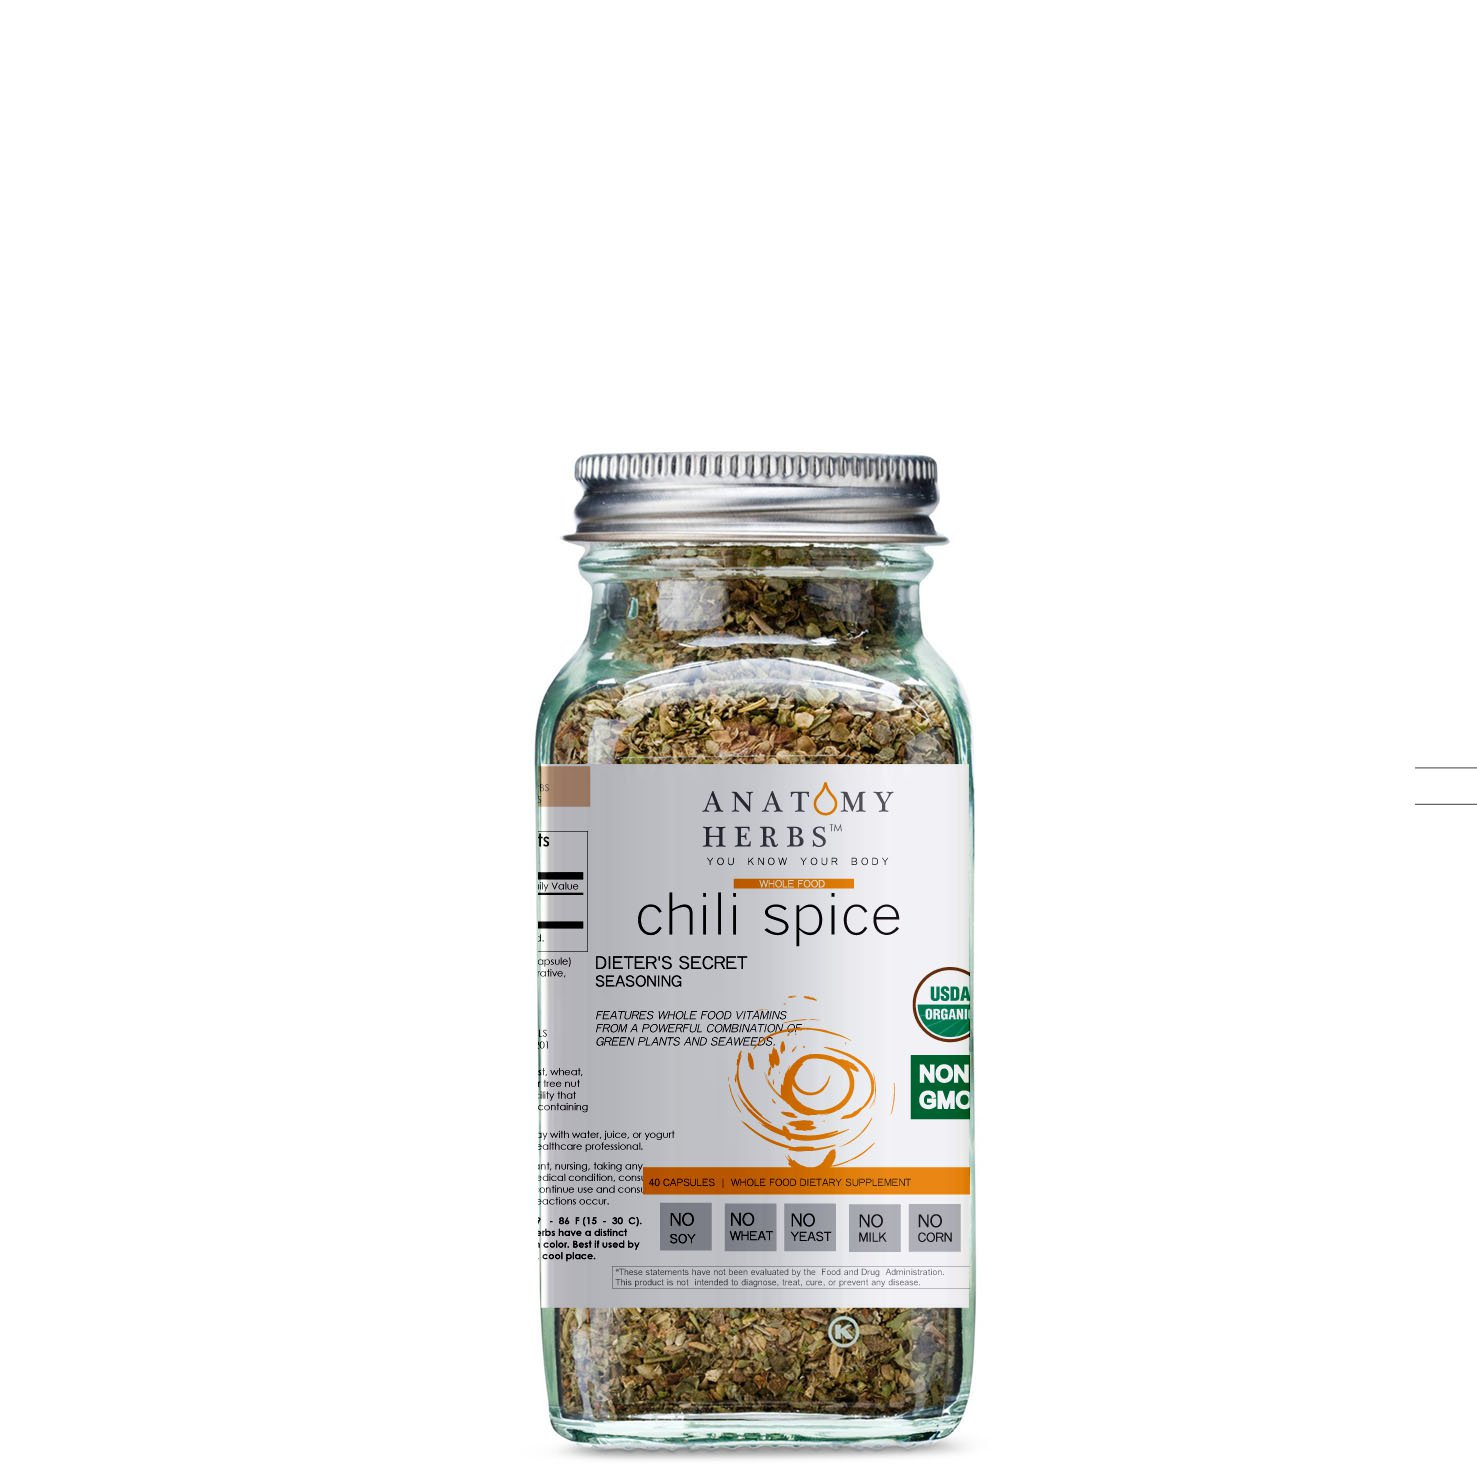 Chili Spice Dieter's Secret Seasoning (Fat Burner)